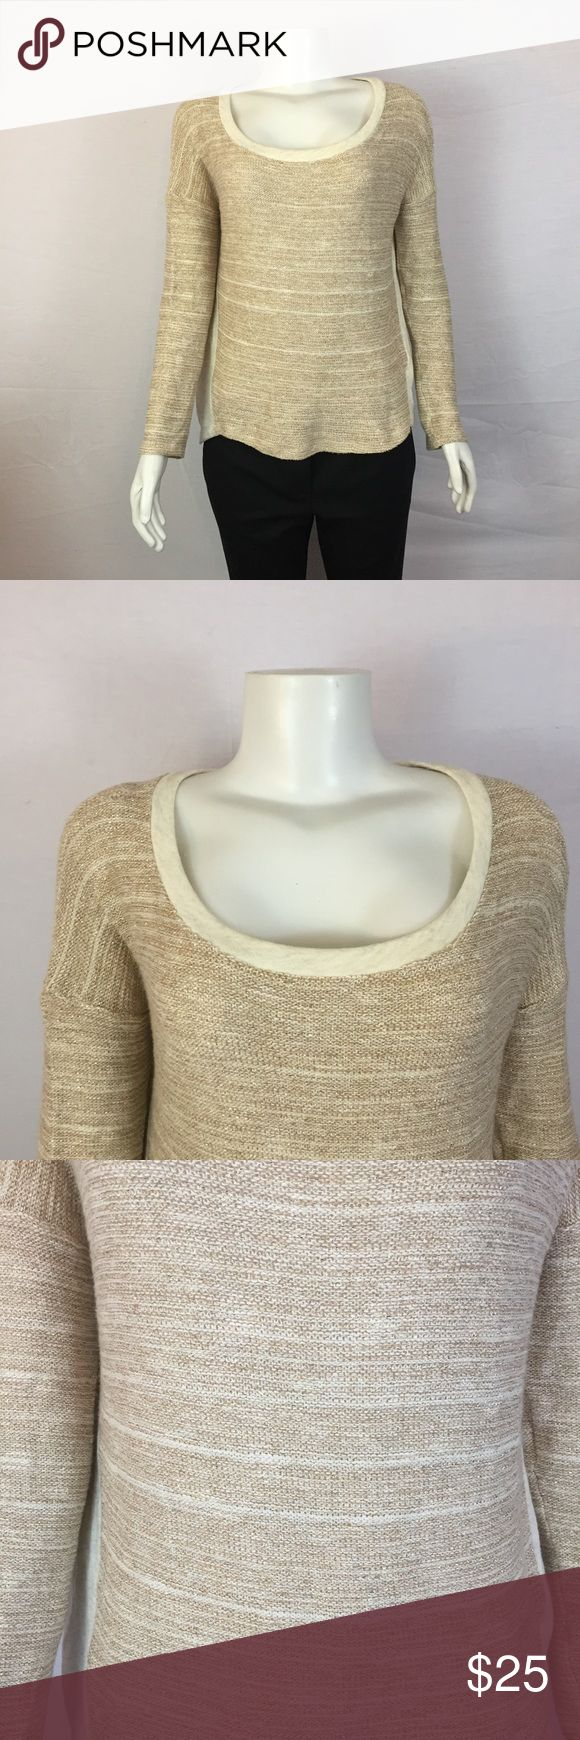 SPLENDID Gold Cream Long Sleeve Top Sz S ***All best reasonable offers accepted!*** Details: This is a beutiful Splendid top! Great for the office or a casual event.Style: 8009Cut: W039600Materials and Care Instructions:50% Cotton42% Rayon4% Lurex45 SpandexMeasurements (approx.)Length: 20 Inches front, 25 inches back(Bottom of neck to bottom of shirt)Bust: 44 Inches (Across the torso armpit to armpit doubled) Sleeve: 17 Inches (Shoulder to end of sleeve) Splendid Tops